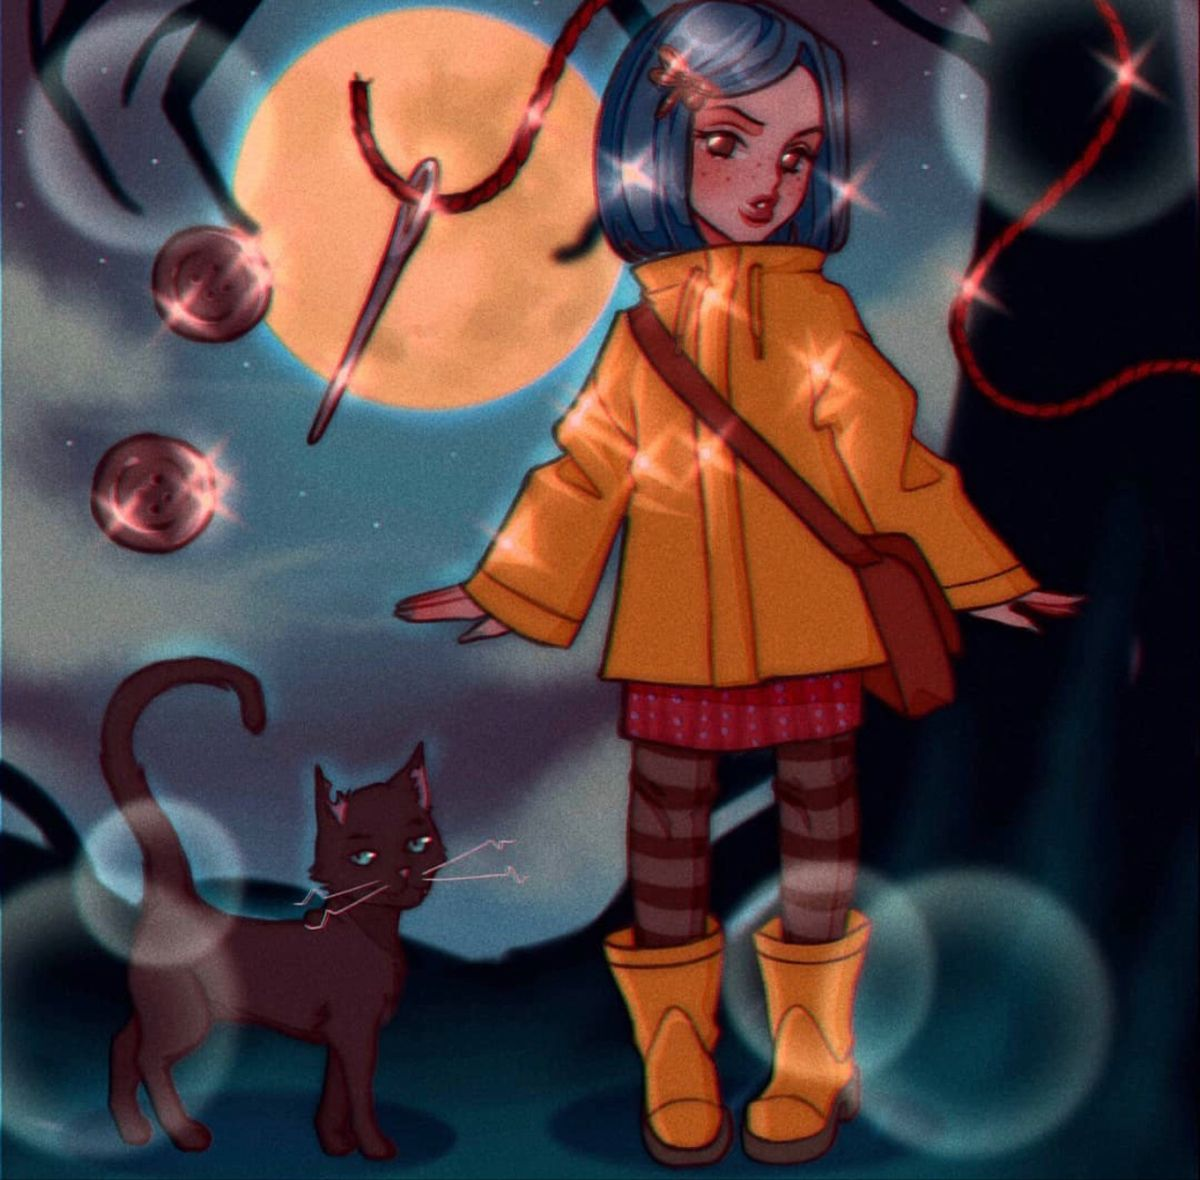 Pin By Amber On Coraline 3 In 2020 Coraline Art Coraline Aesthetic Old Anime